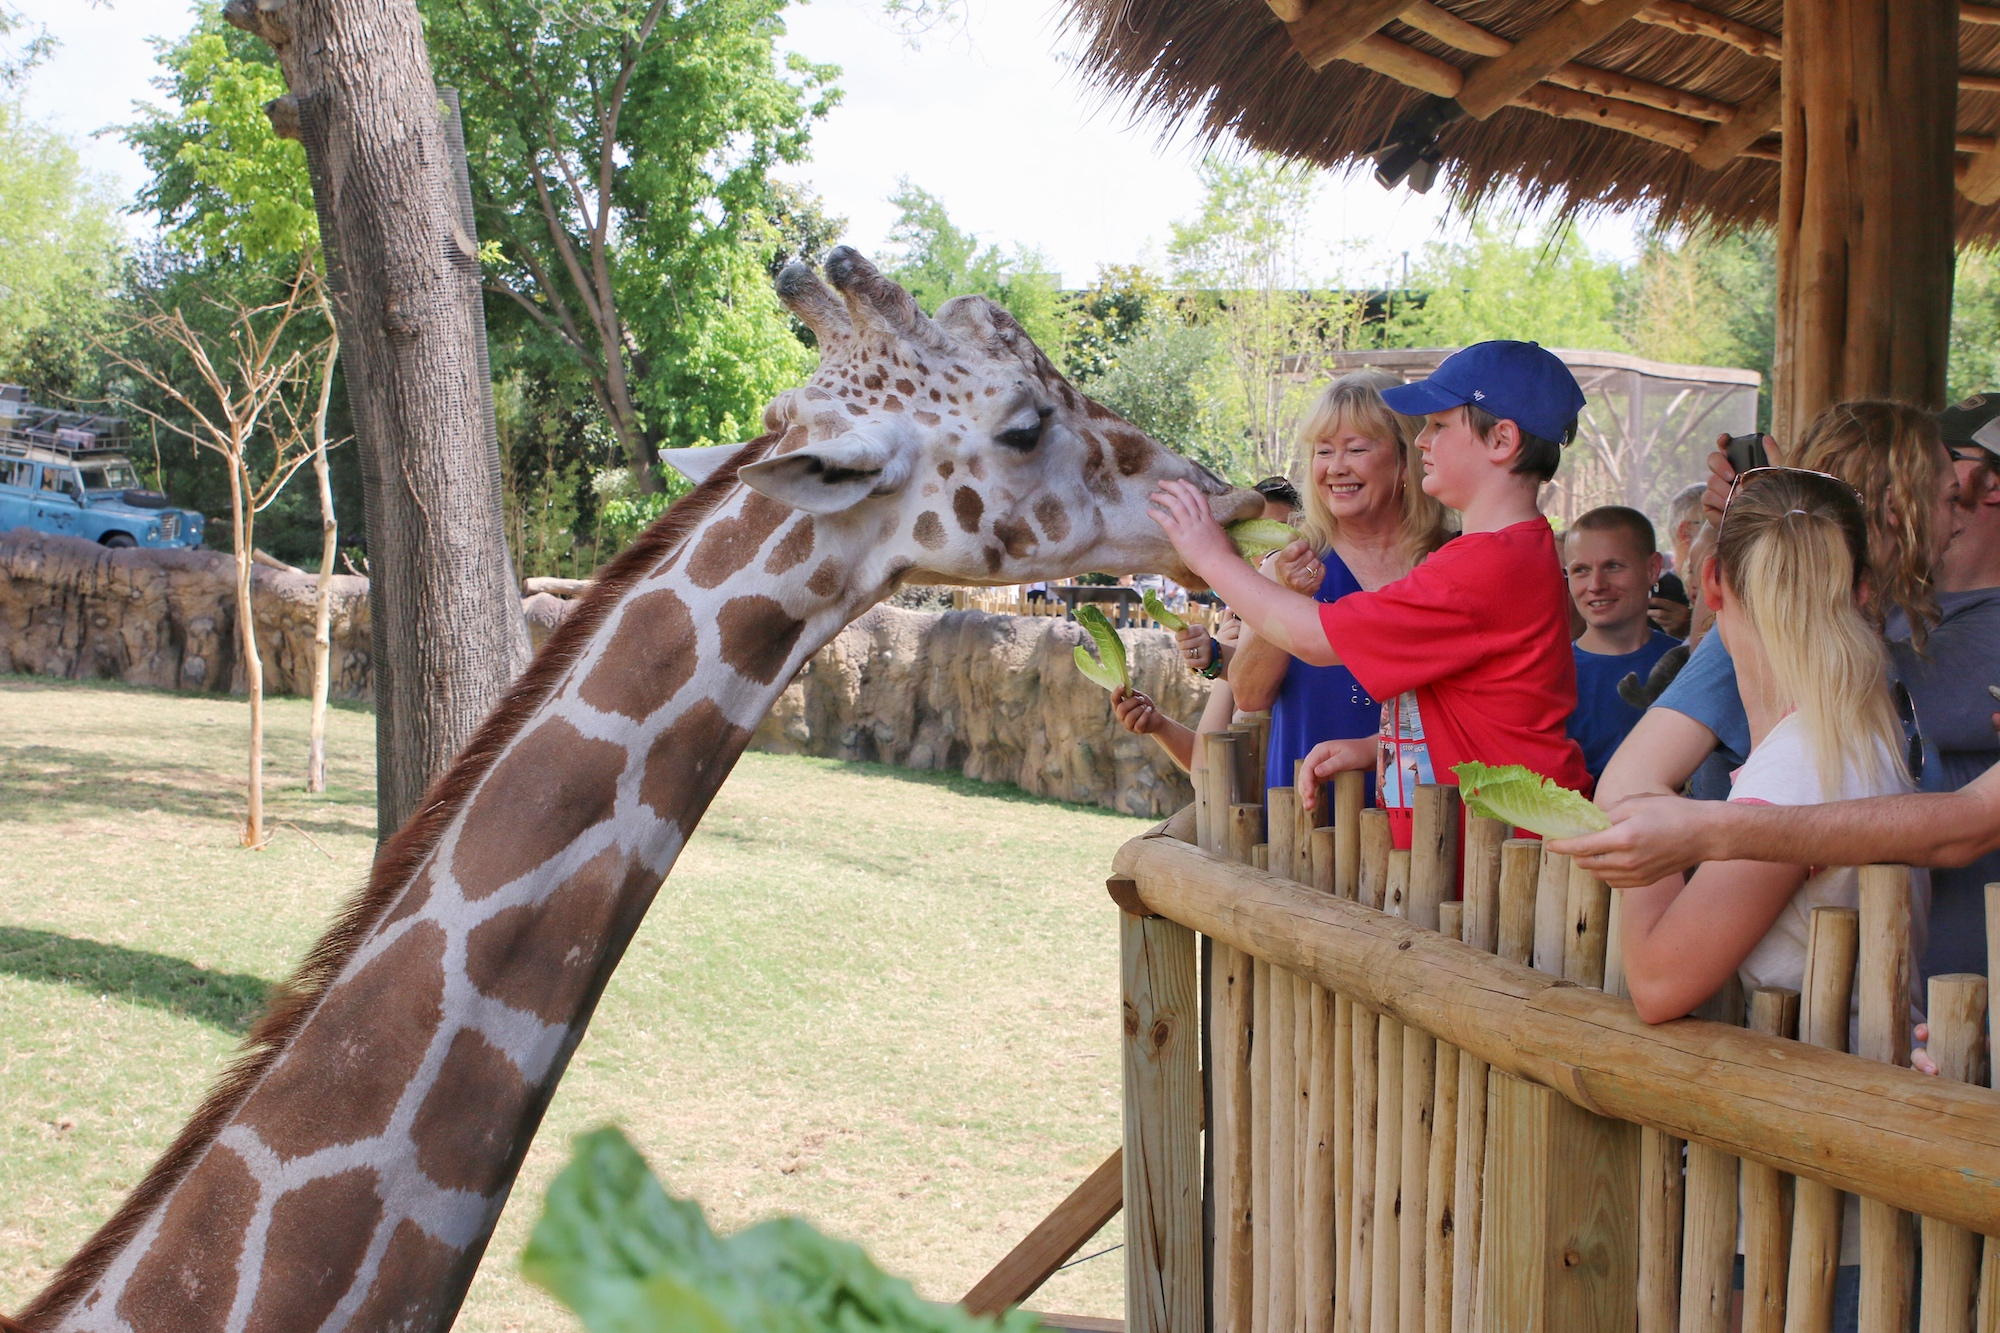 feeding giraffes from zoo platform